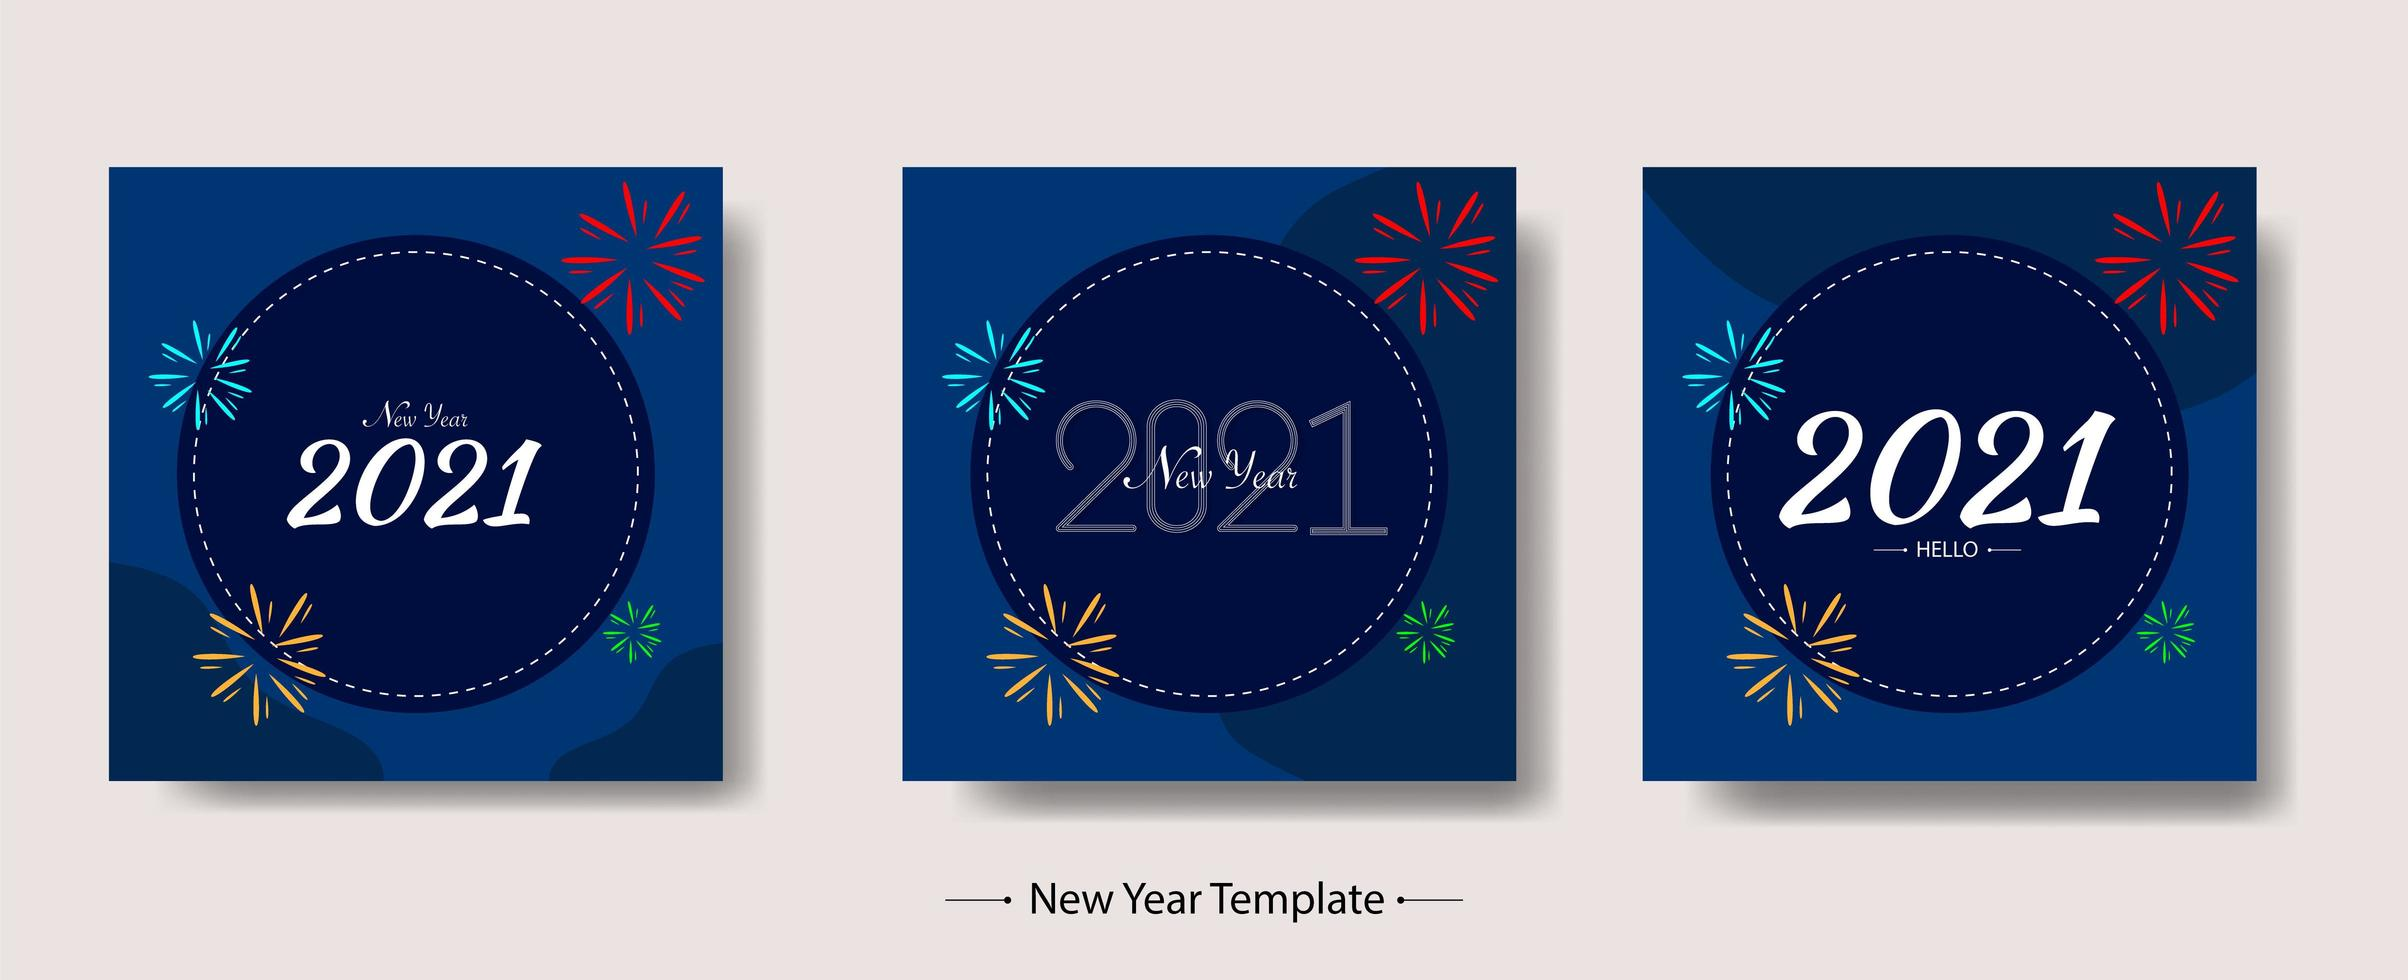 New Year 2021 Template Bundle vector